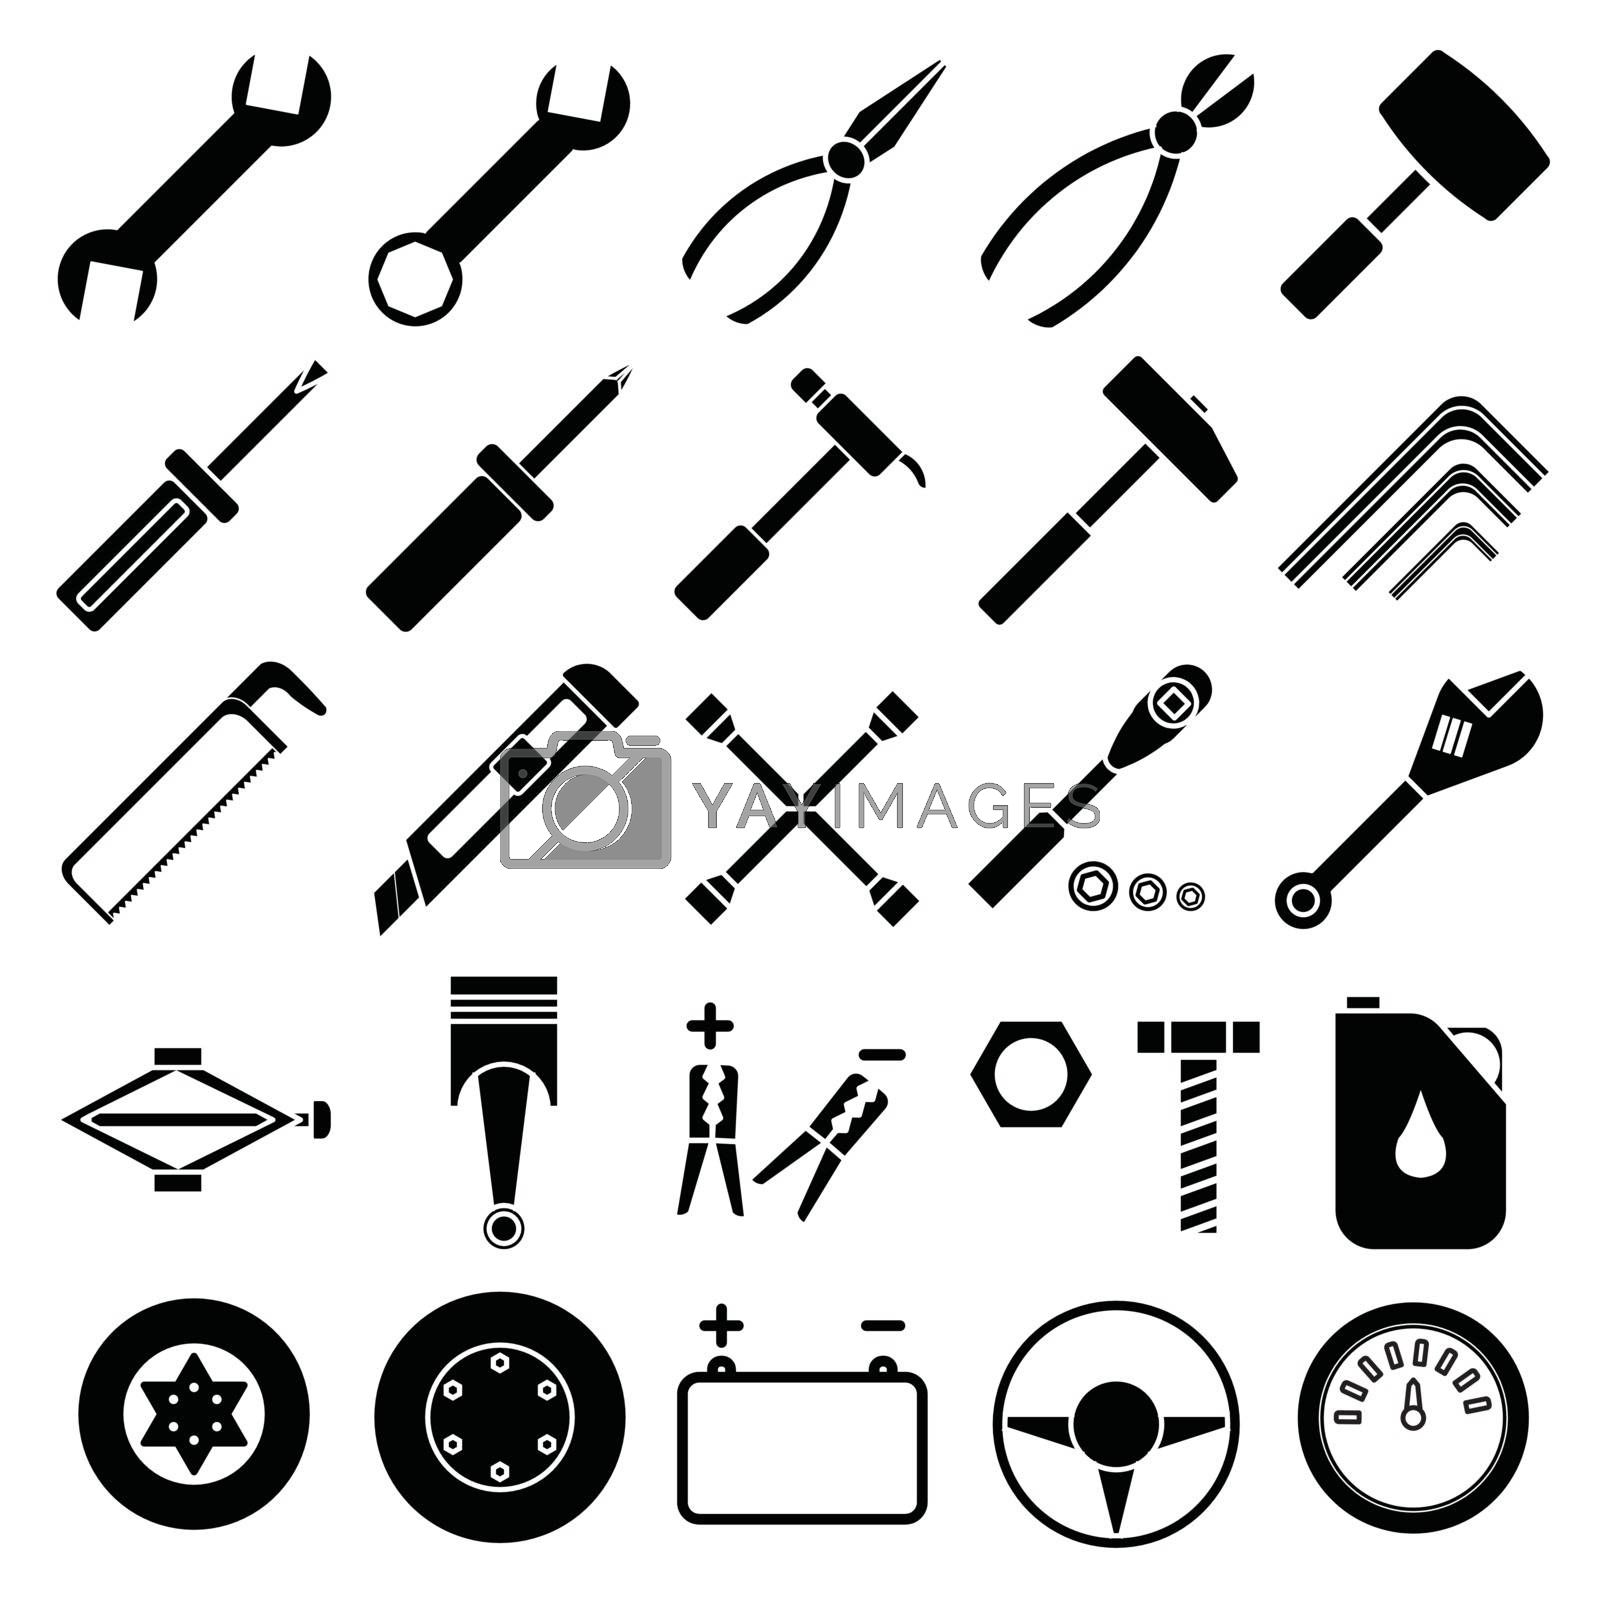 Royalty free image of Auto Mechanic Tools set vector by attaphong